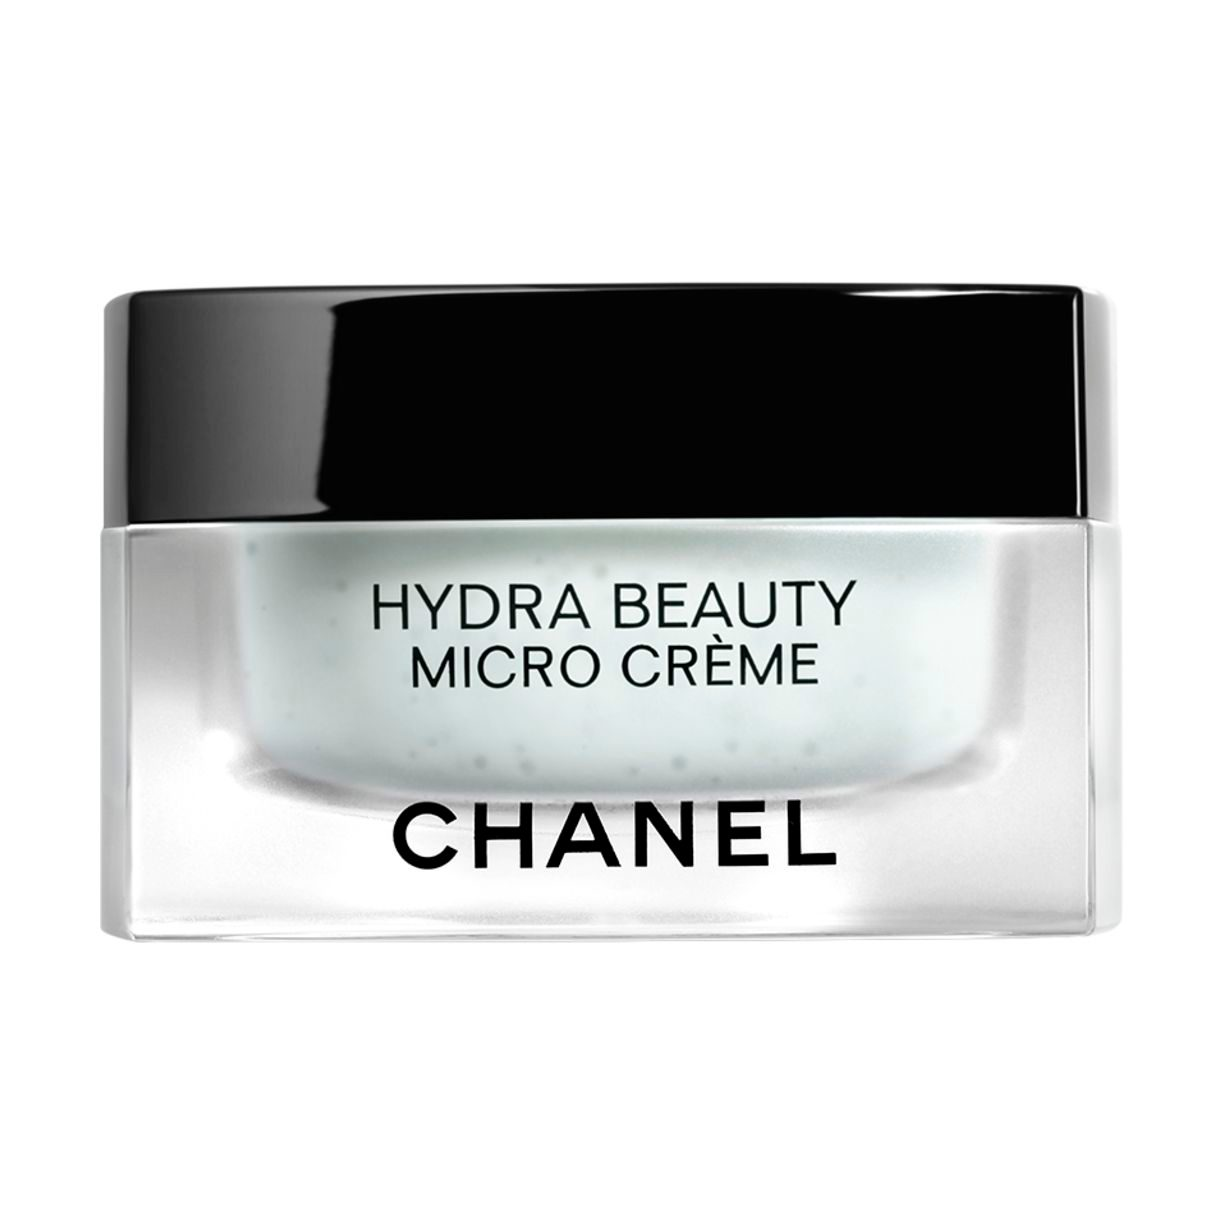 HYDRA BEAUTY MICRO CRÈME FORTIFYING REPLENISHING HYDRATION 50g